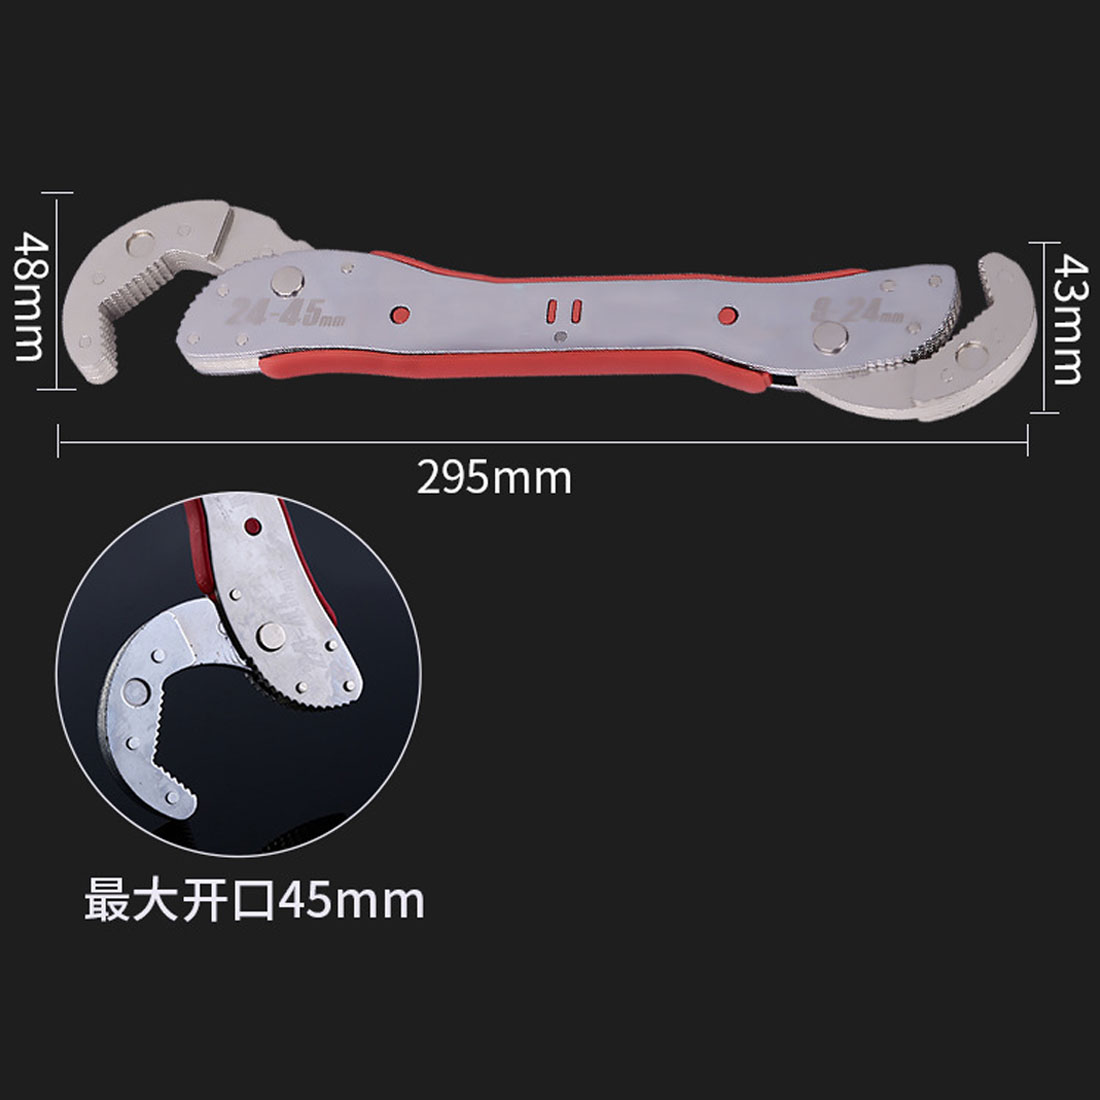 9-45mm Adjustable Multi Purpose Magic Spanner Tools Universal Wrench Pipe Adjustable Spanner For Home Wrench multifunctional spanner wrench opening angle launching device with adjustable wrench universal million large opening angle